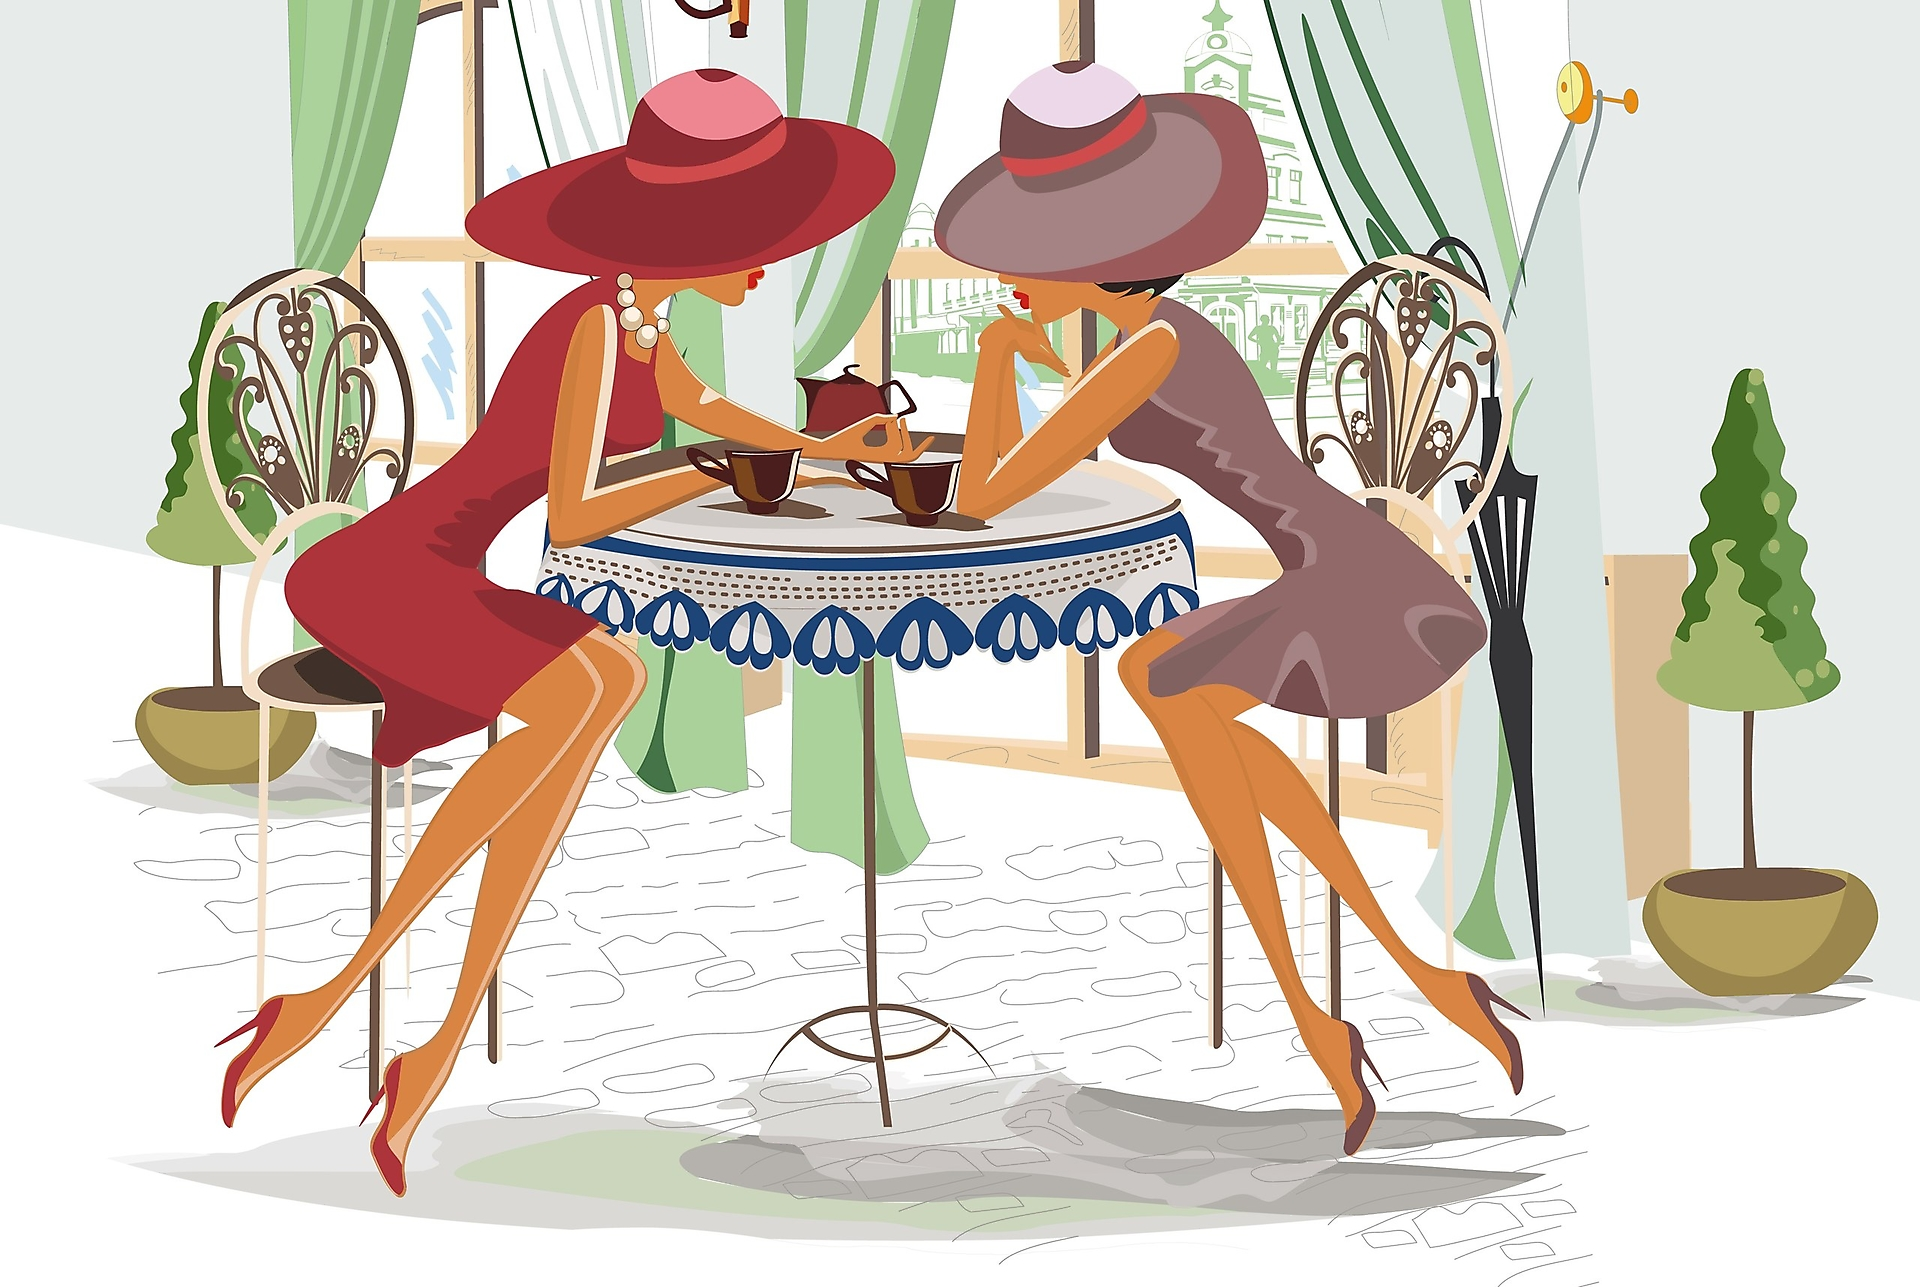 _____two_girls_in_cafe_illustration_20150530_1449661746